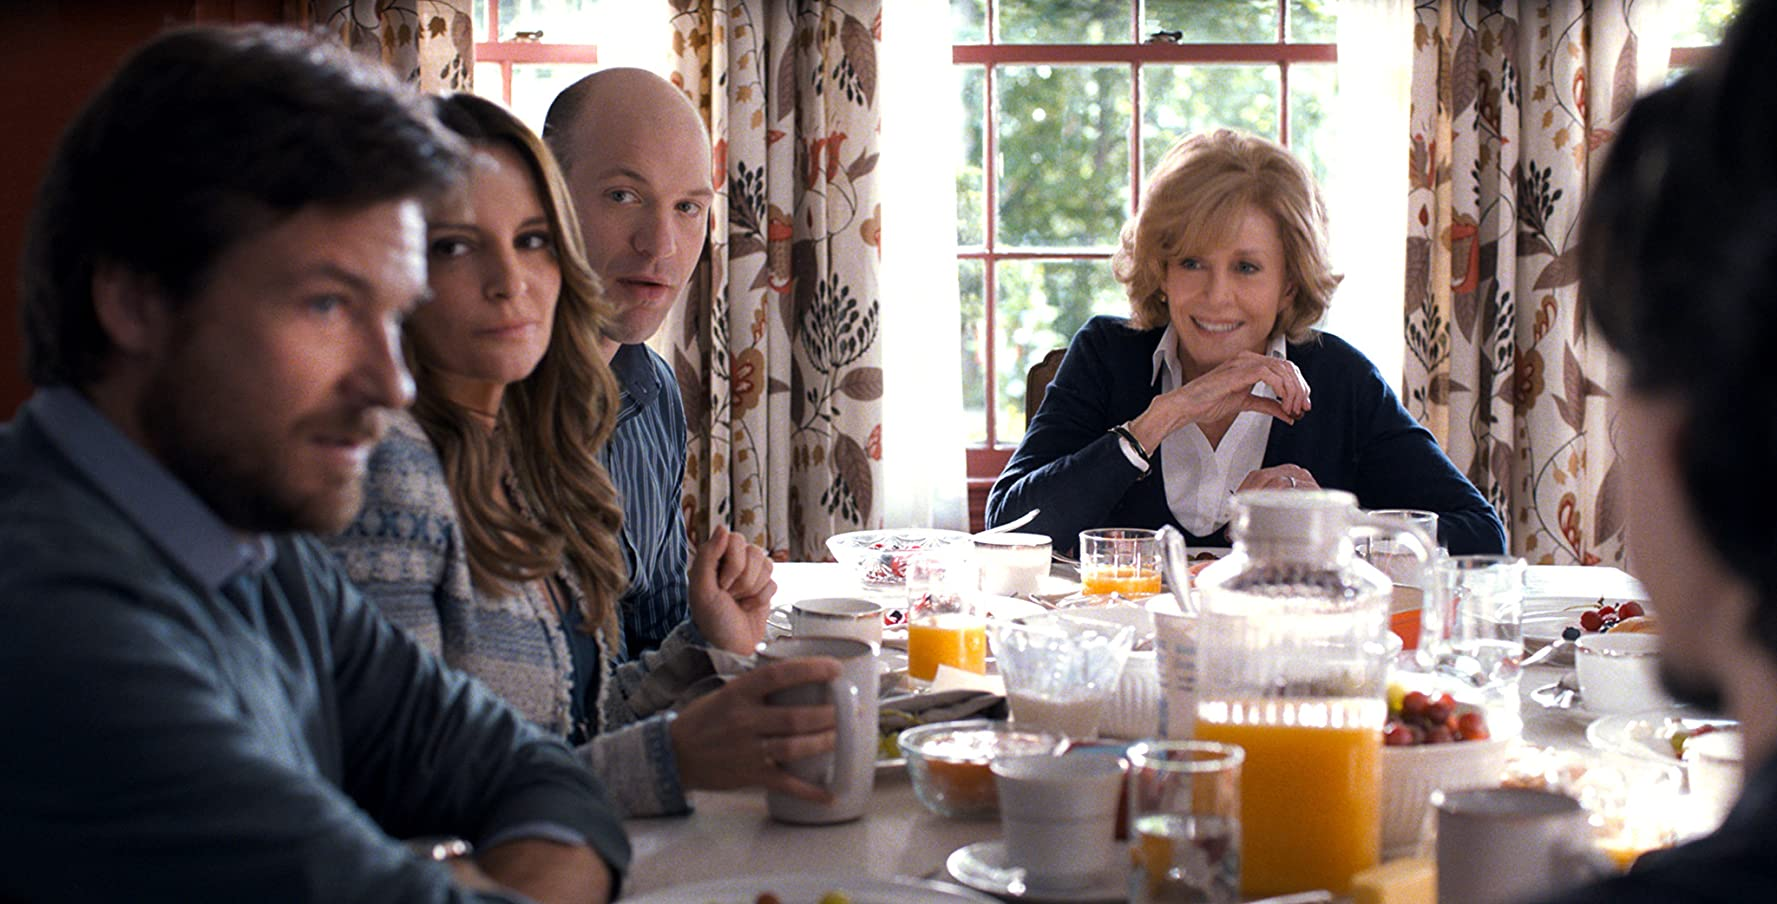 Jane Fonda, Jason Bateman, Tina Fey, and Corey Stoll in This Is Where I Leave You (2014)